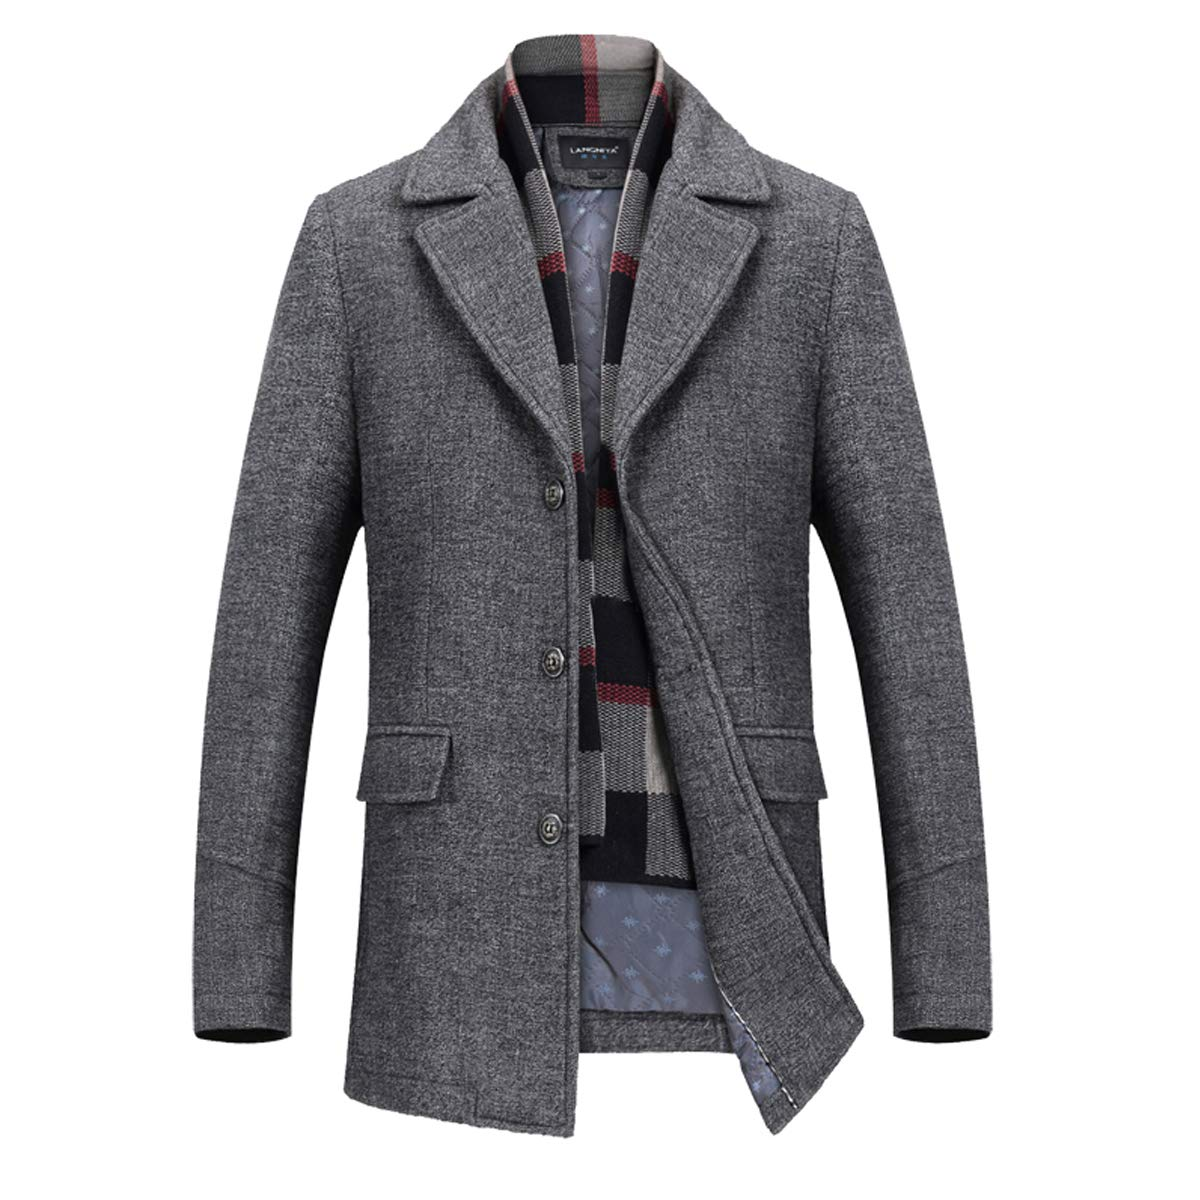 INVACHI Men's Slim Fit Winter Warm Short Wool Blend Coat Business Jacket with Free Detachable Soft Touch Wool Scarf by INVACHI